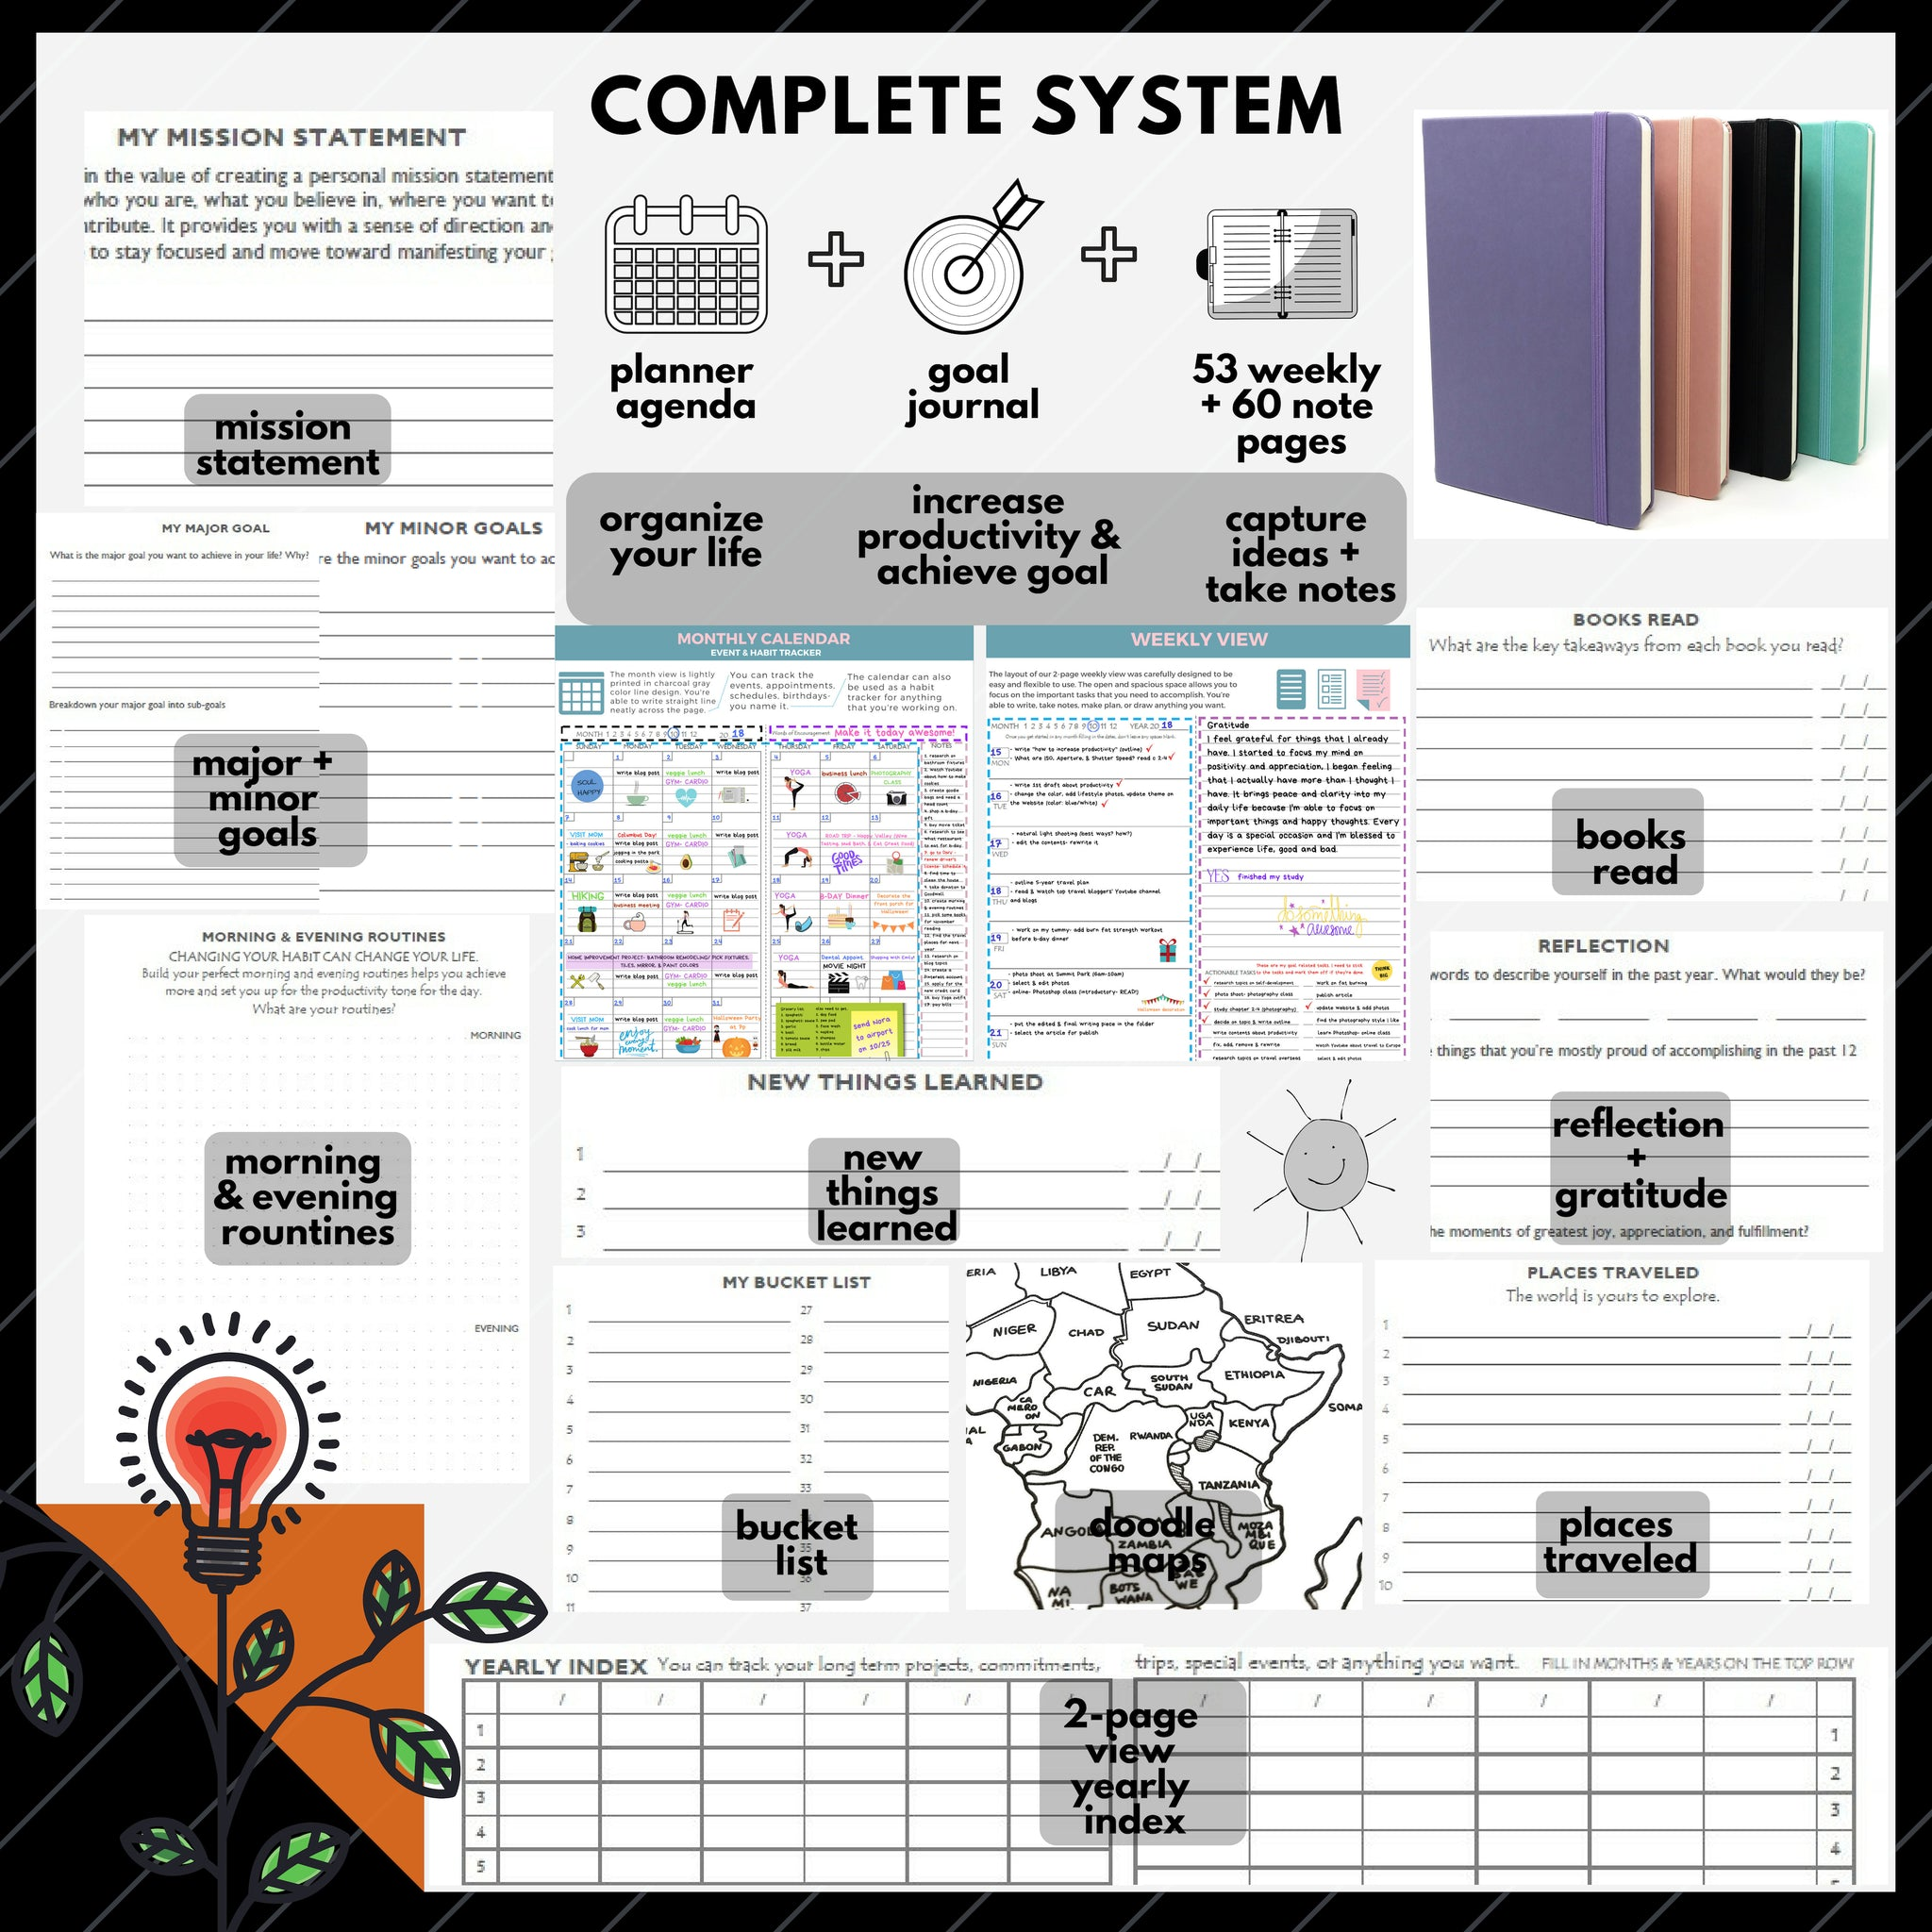 Kelkaa Planner 2020 Daily Weekly Monthly Agenda to Achieve Goals /& Happiness Vision Board//Mind Map Gratitude /& Productivity Journal 1 Year Undated A5 Hardcover FSC Certified Notebook Blush Pink